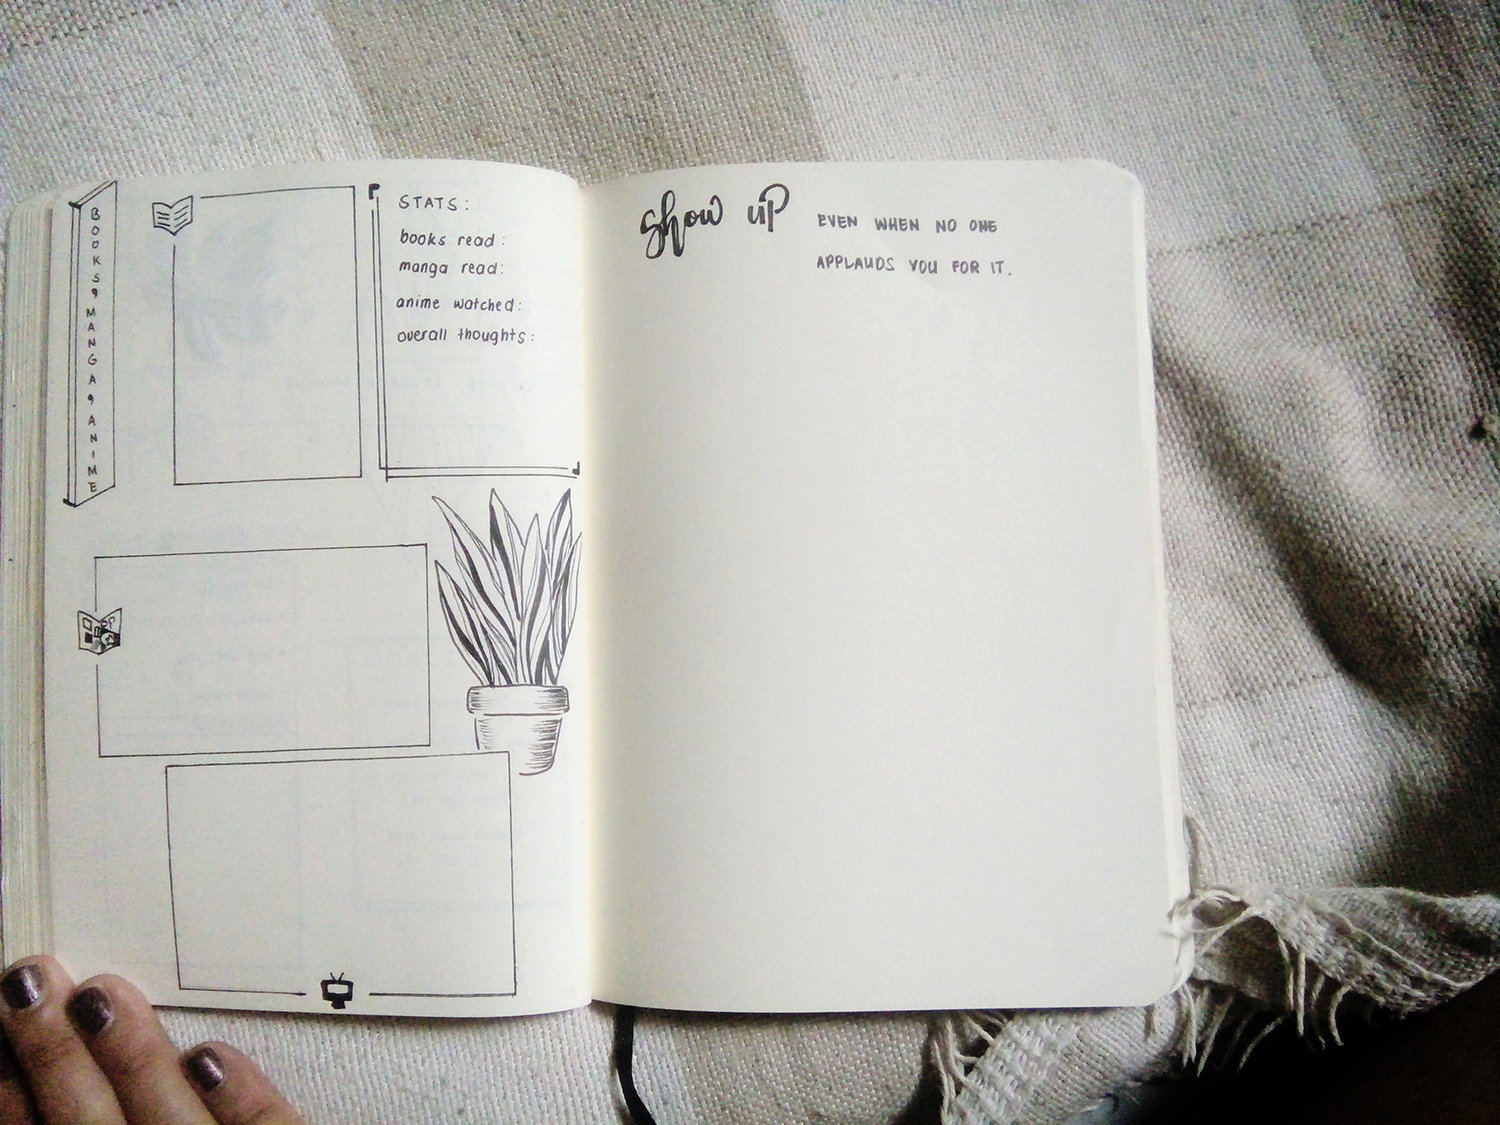 """Picture of my bullet journal's books, manga and anime page and a quote on the next page, """"Show up even when no one applauds you for it."""""""